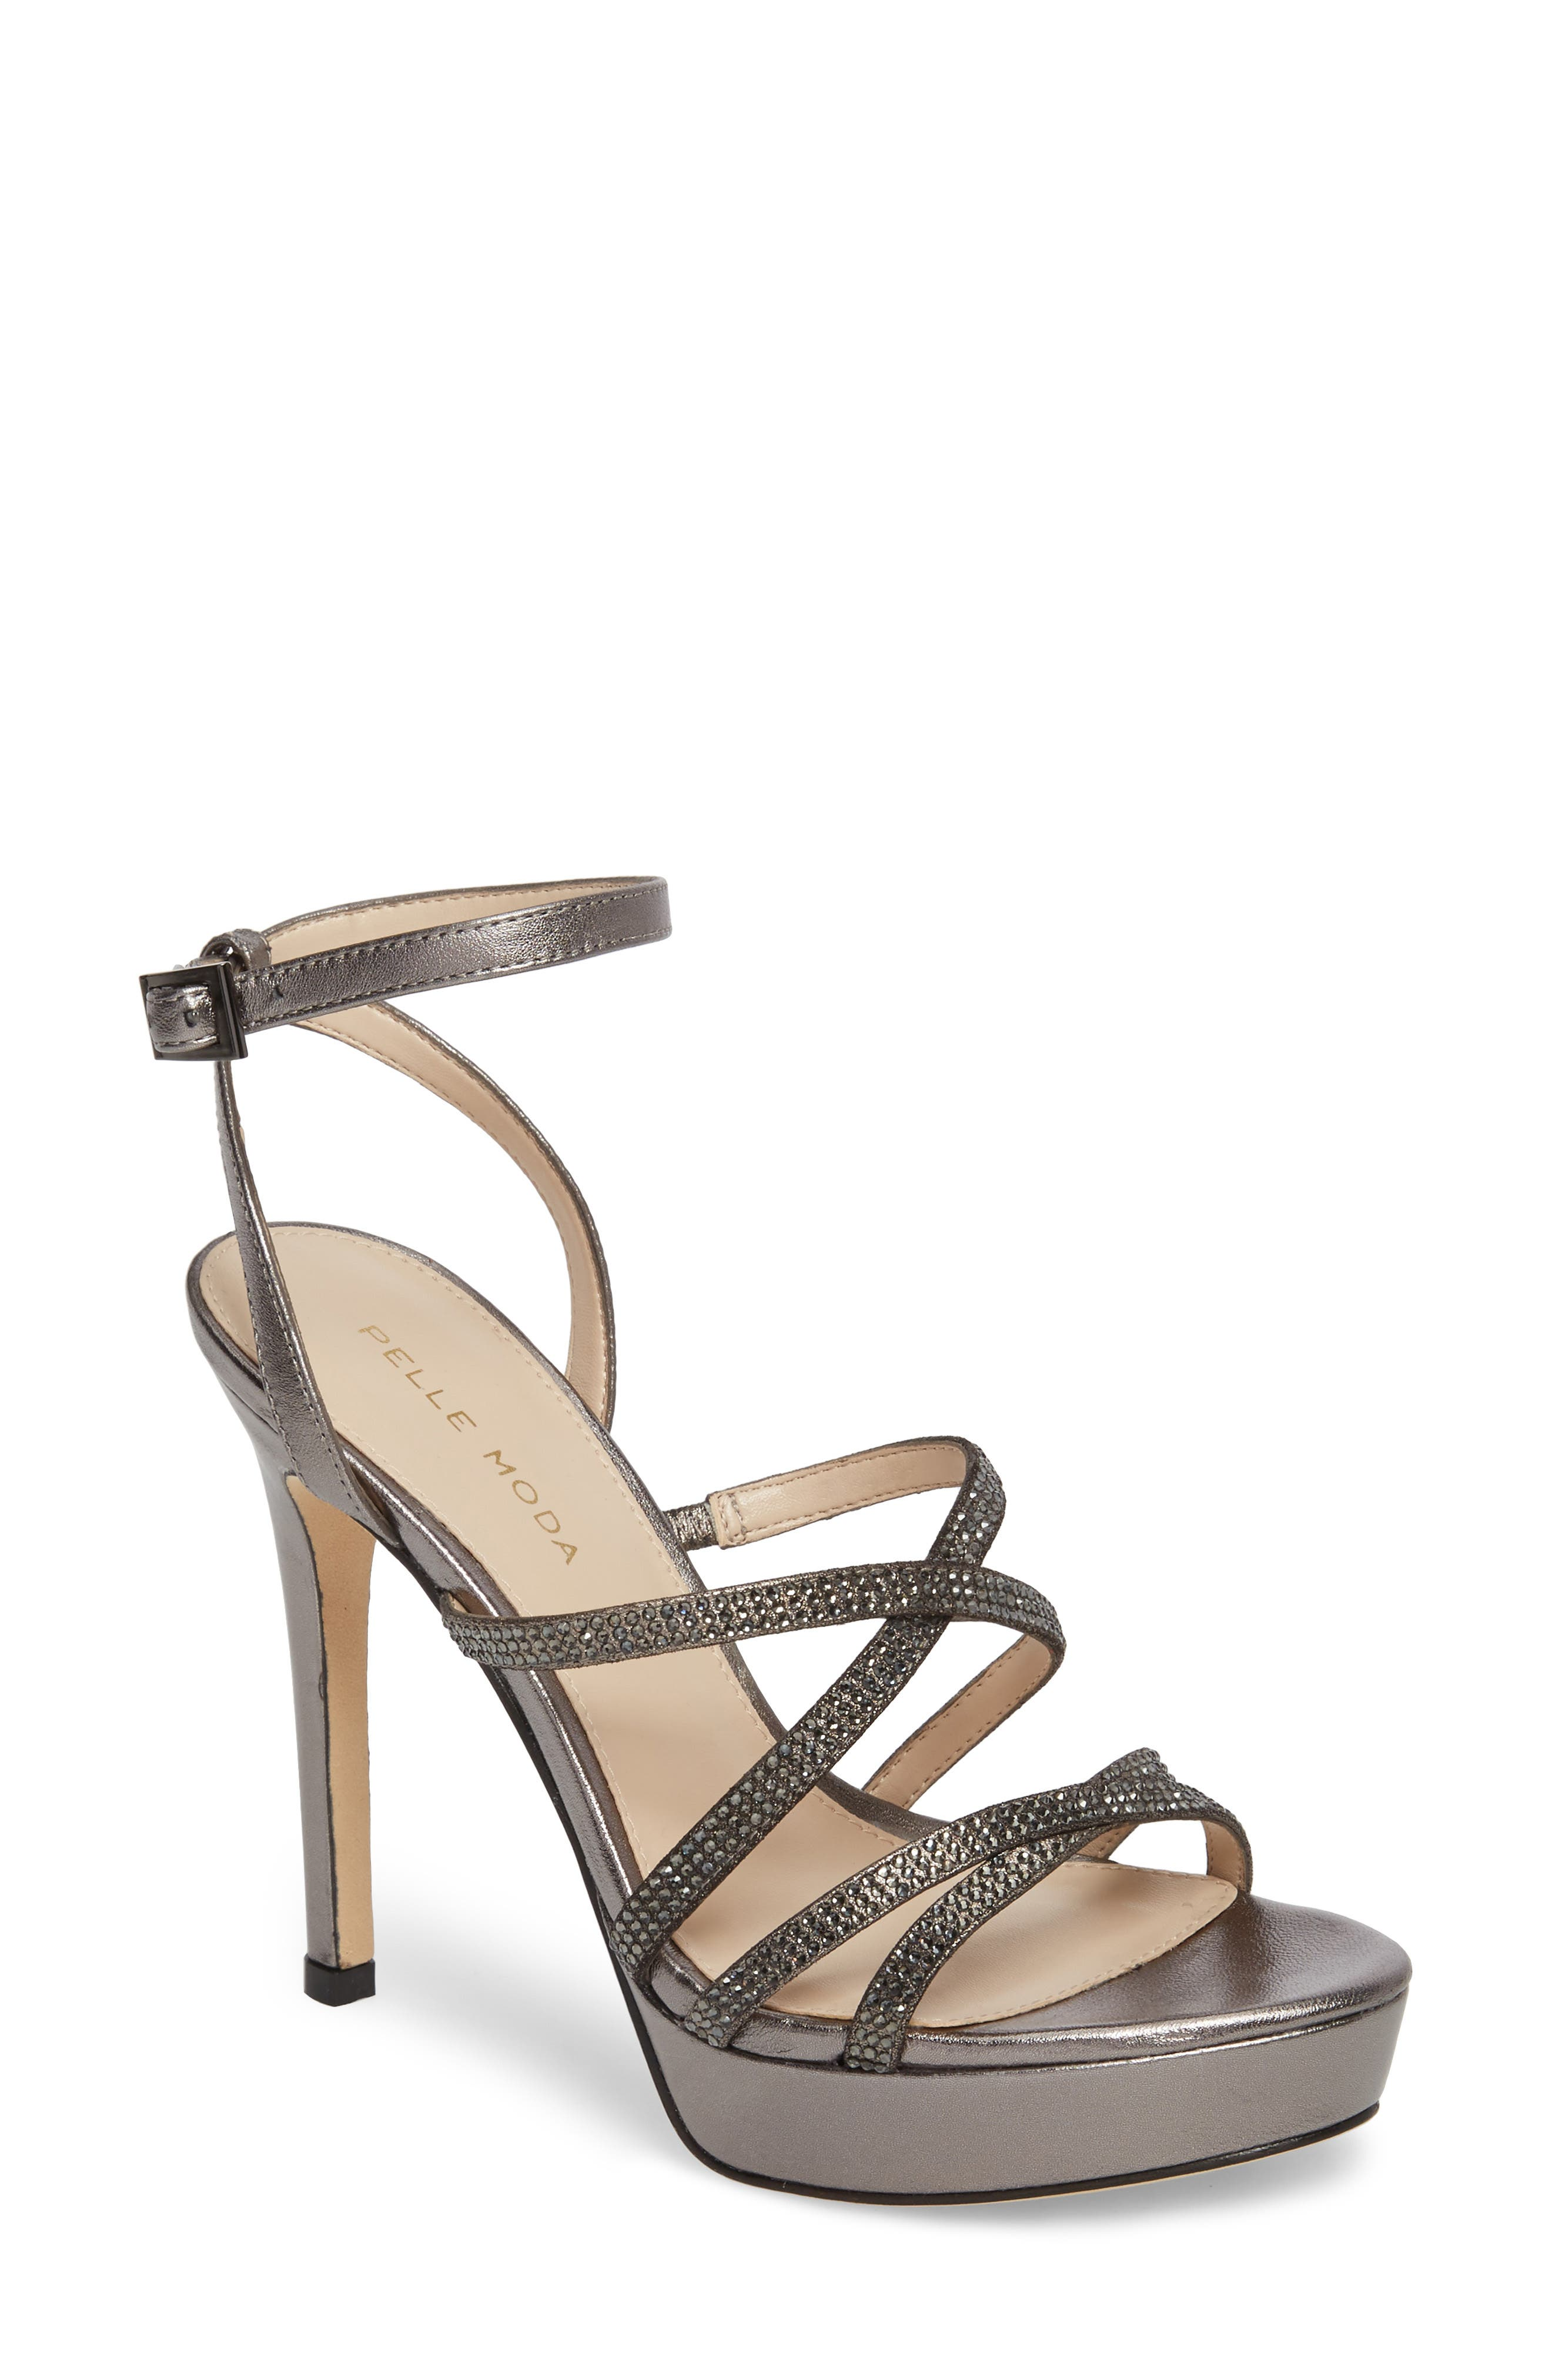 Oak Platform Sandal,                             Main thumbnail 1, color,                             Pewter Metallic Suede